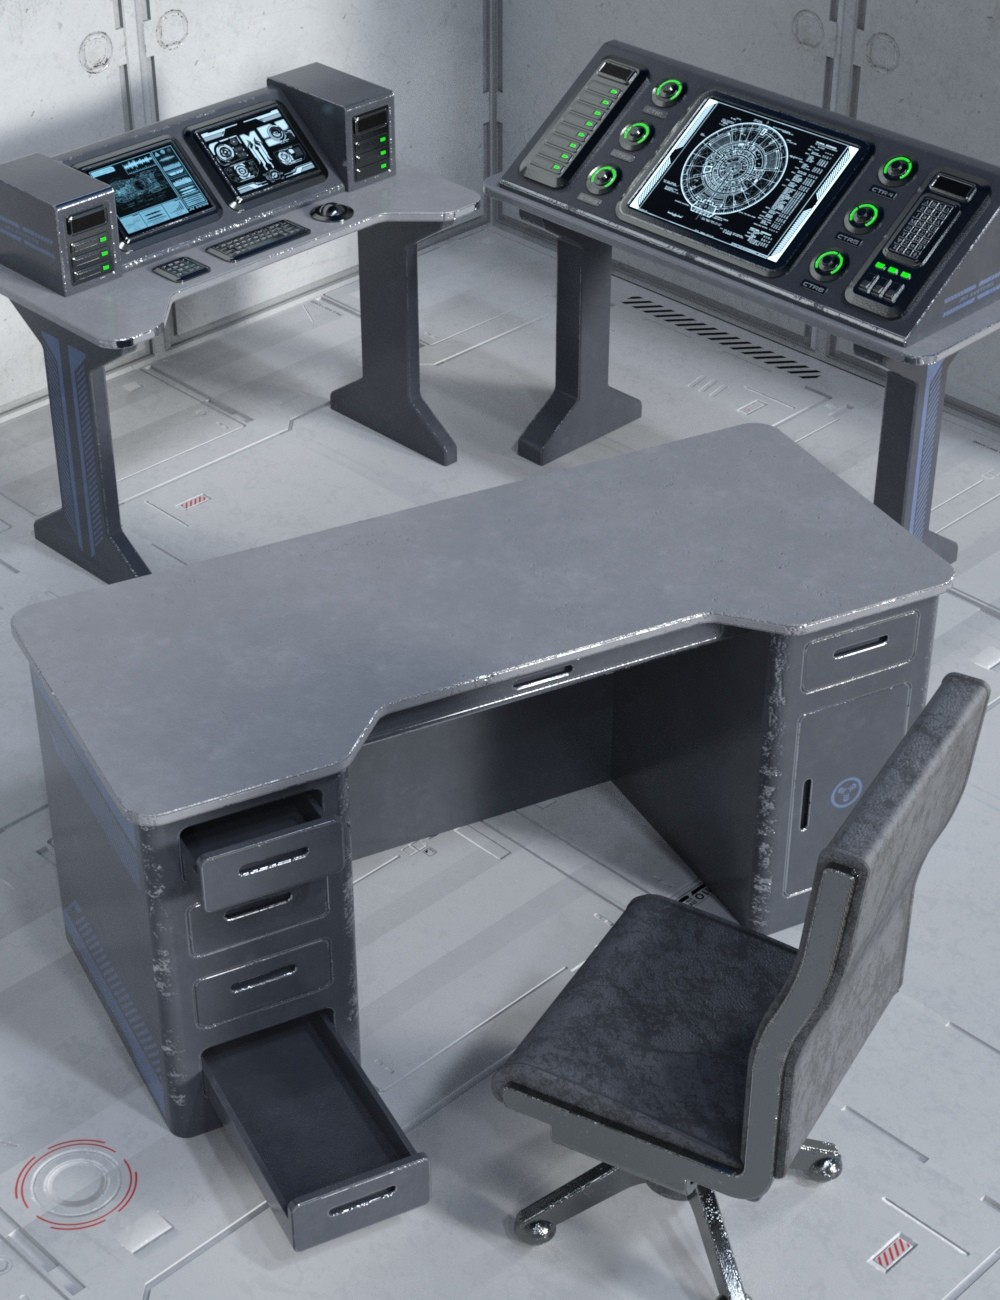 Sci-fi Desks and Chair